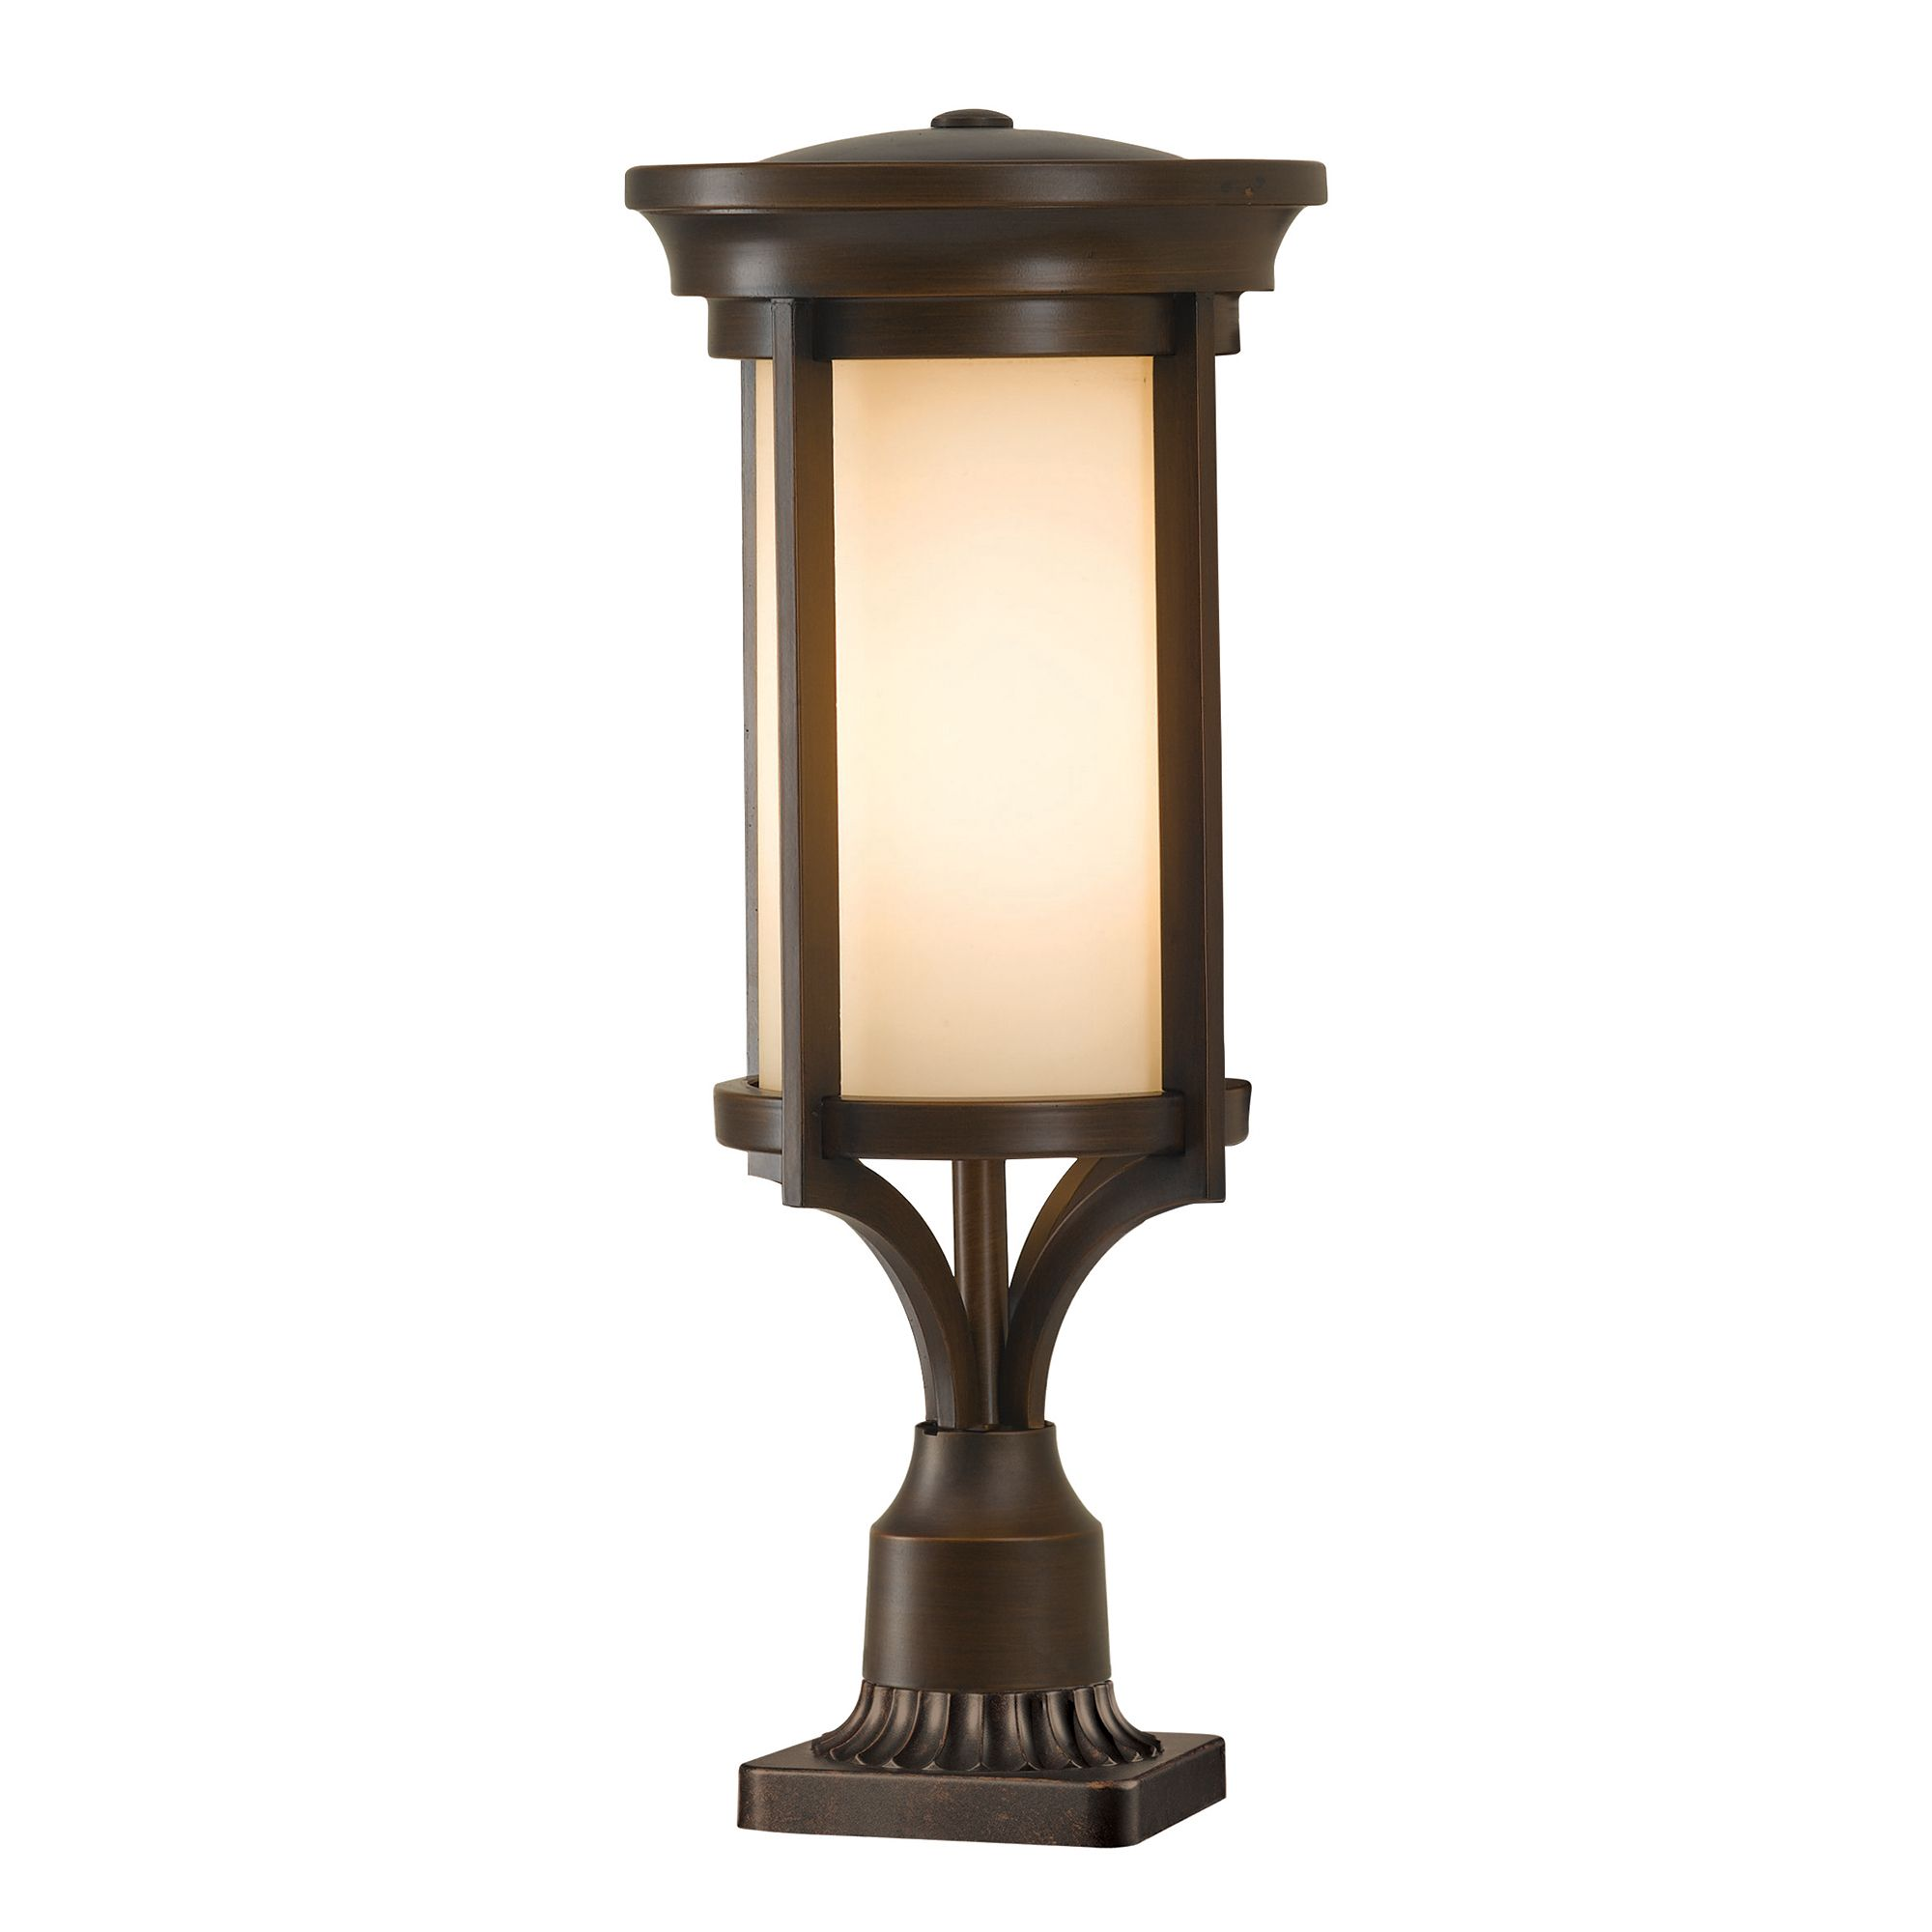 Merrill Outdoor Pedestal In Heritage Bronze With Cream